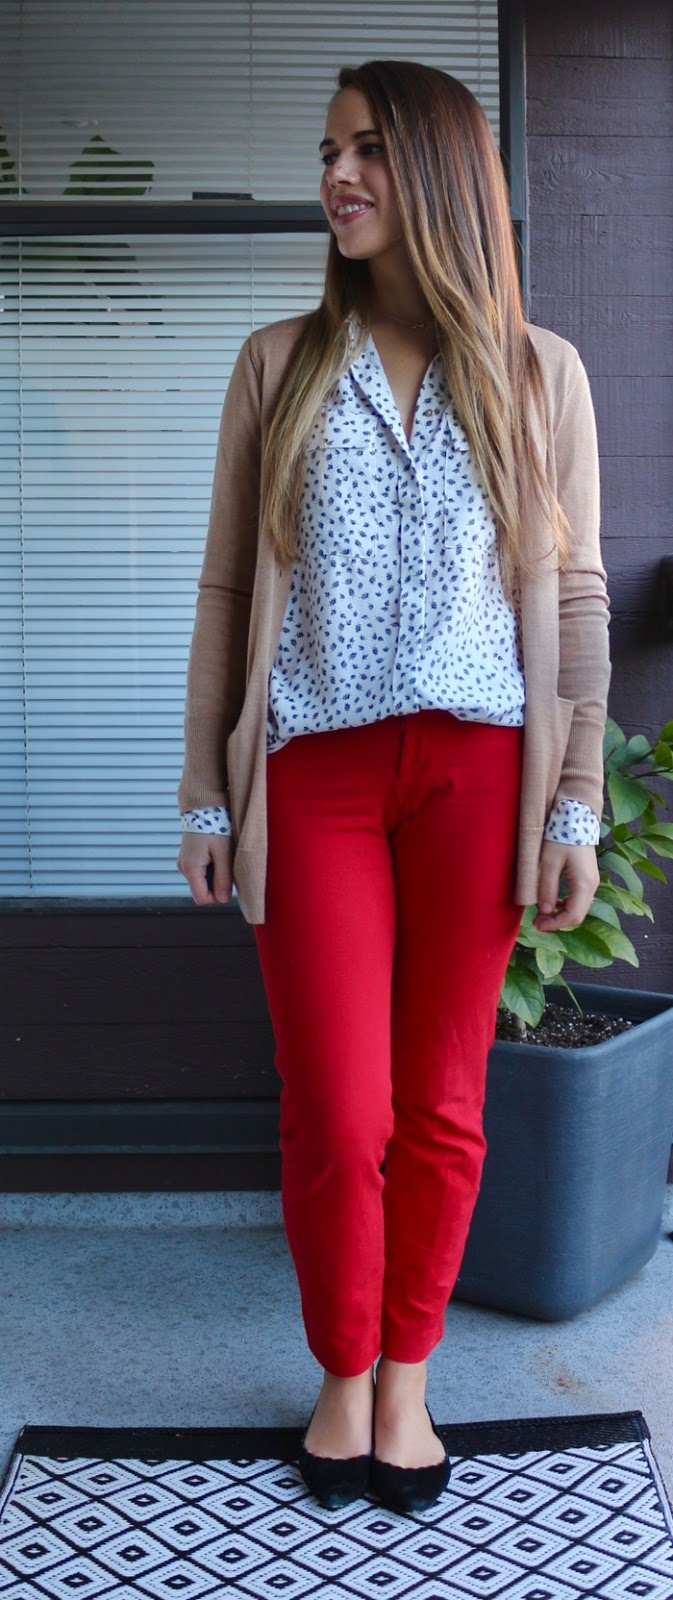 Jules in Flats - Camel Cardigan, Pocket Blouse and Red Ankle Pants for Work